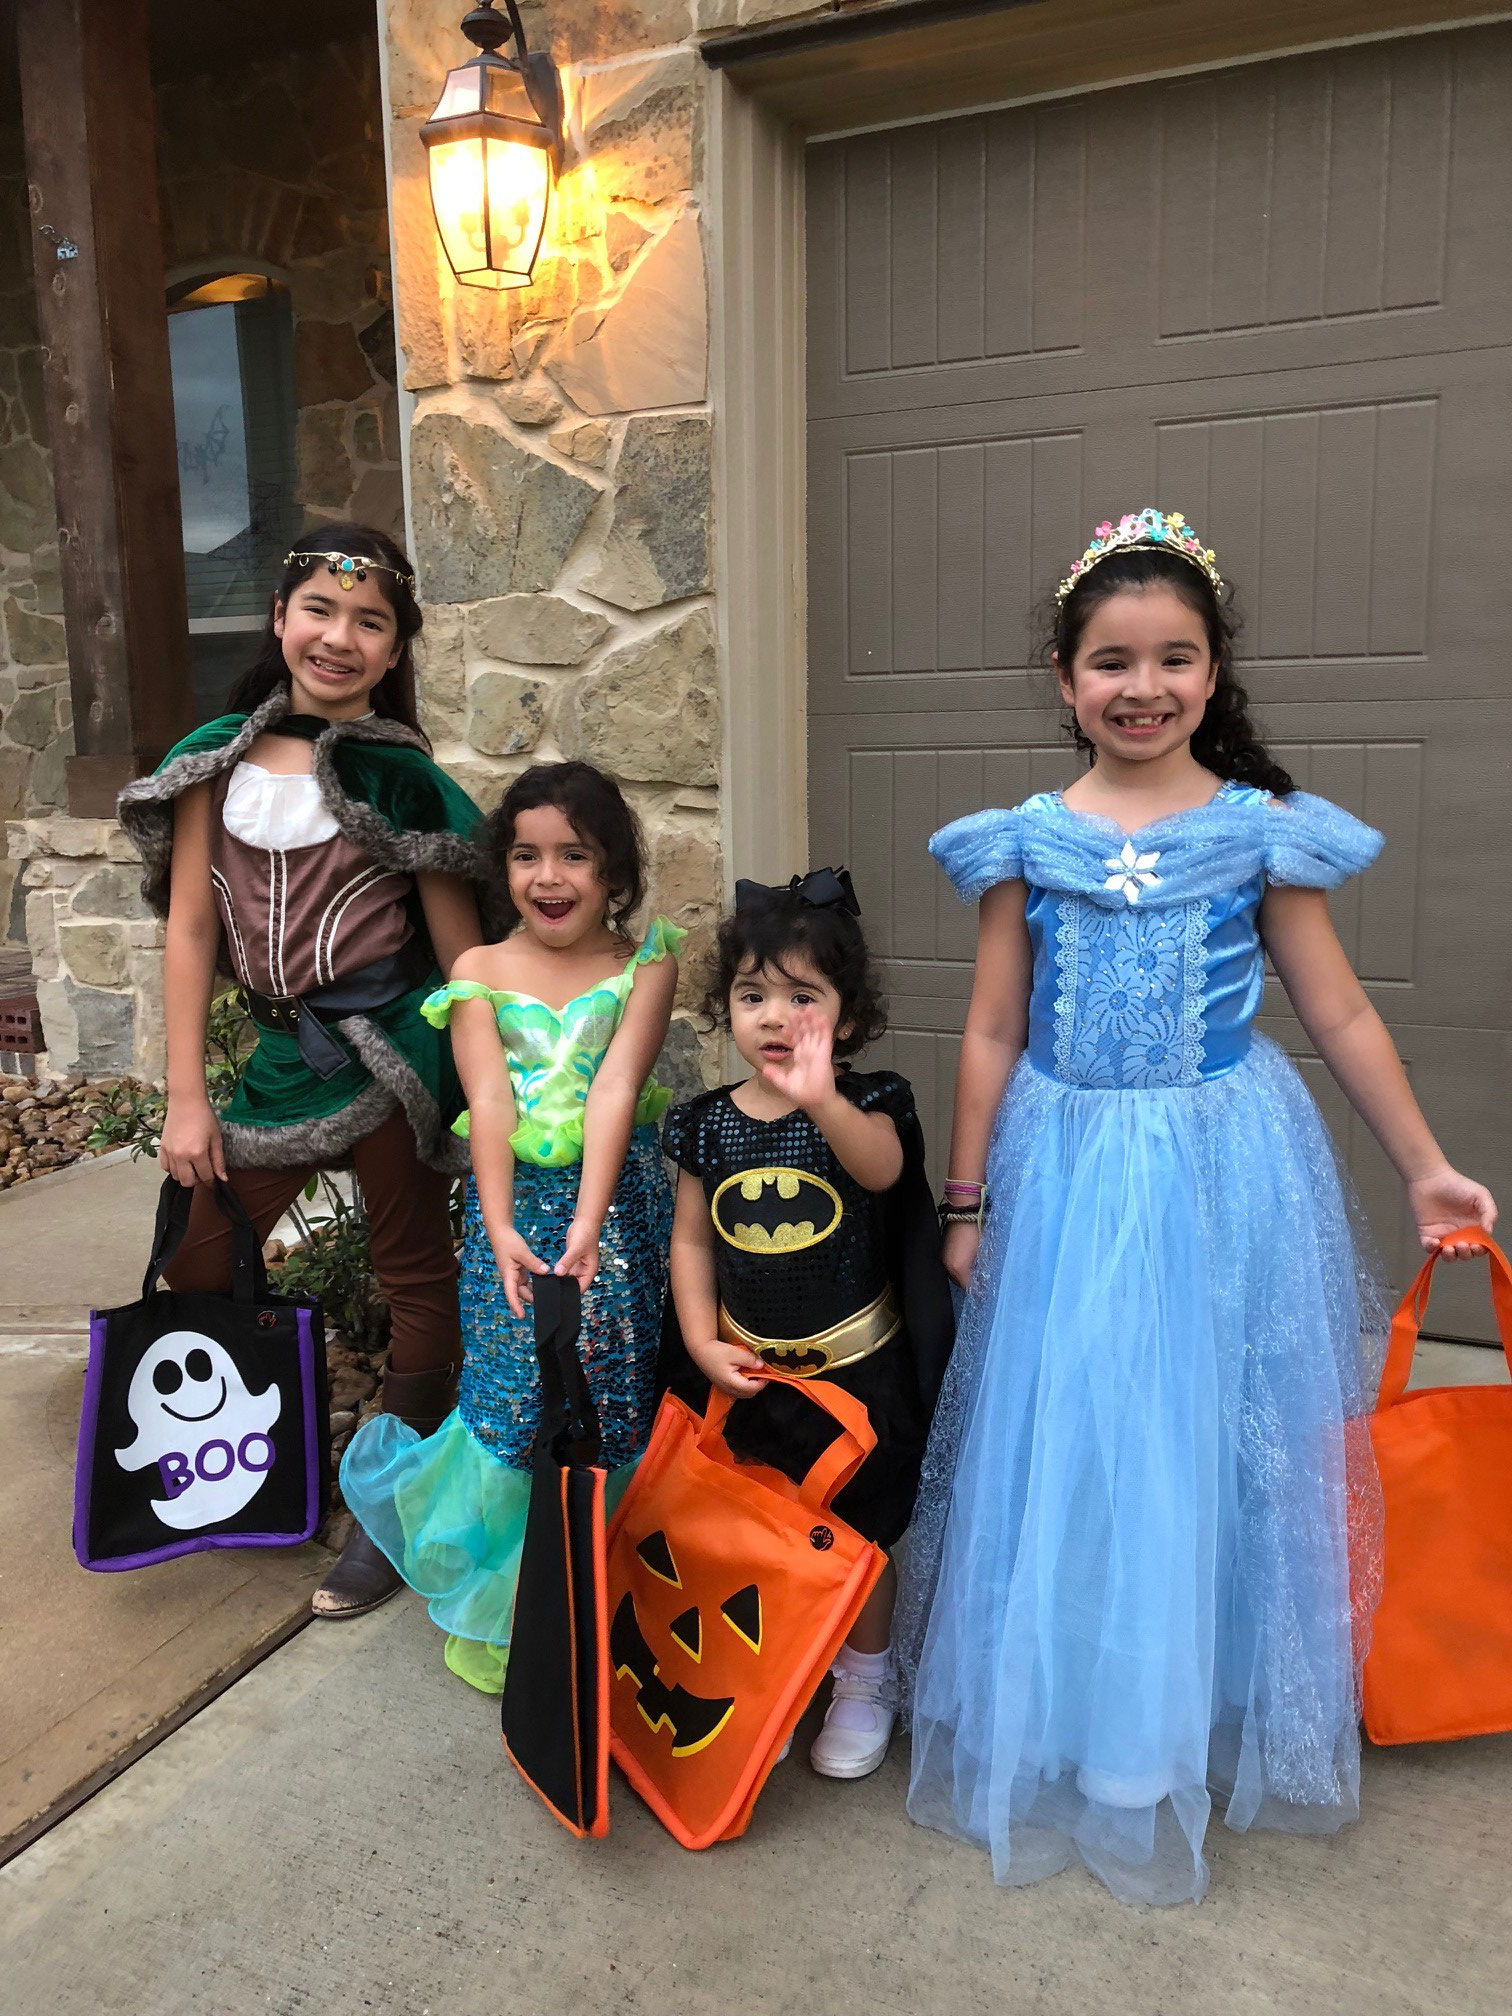 "<div class=""meta image-caption""><div class=""origin-logo origin-image none""><span>none</span></div><span class=""caption-text"">Consumer reporter Patricia Lopez had a house full of girl power for Halloween this year!</span></div>"